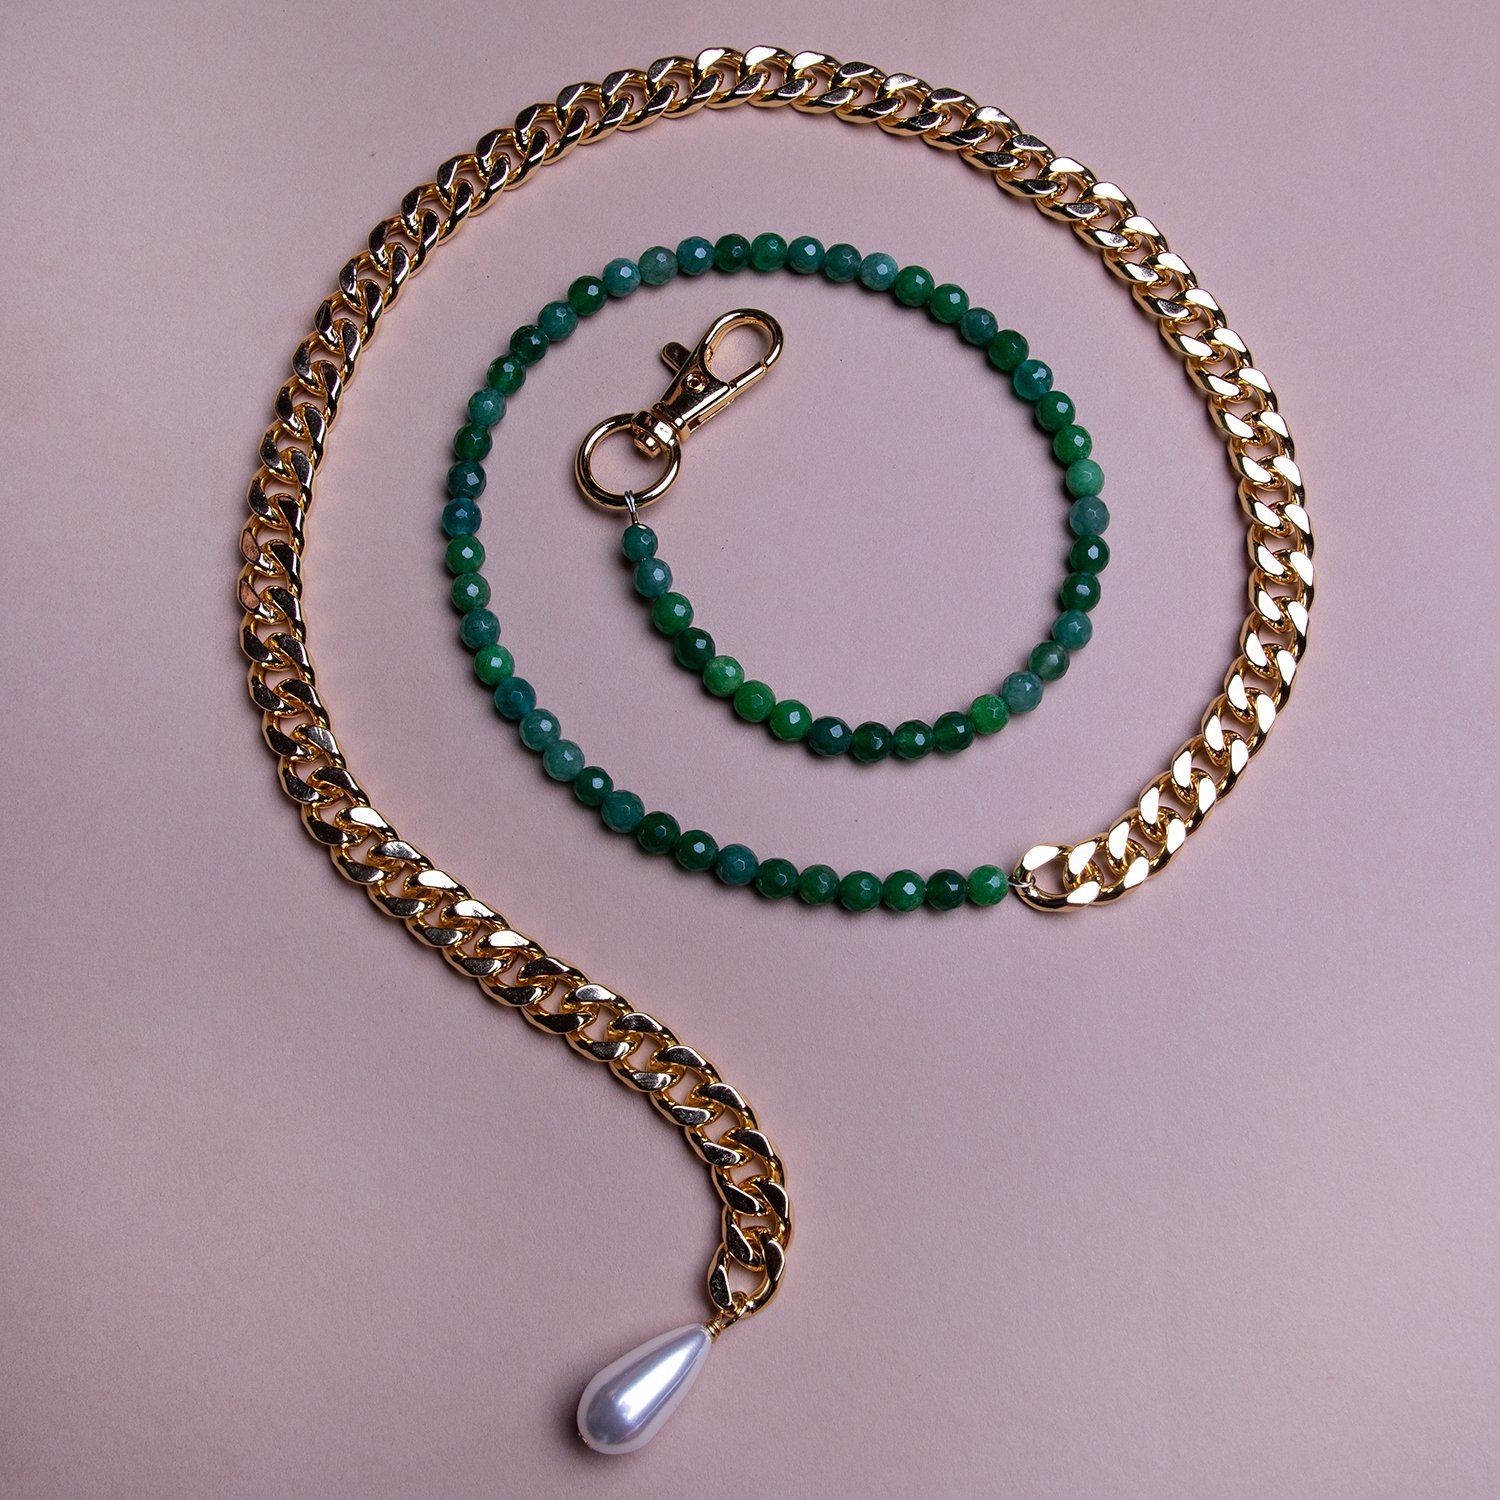 Image of 50/50 Jade Belly Chain